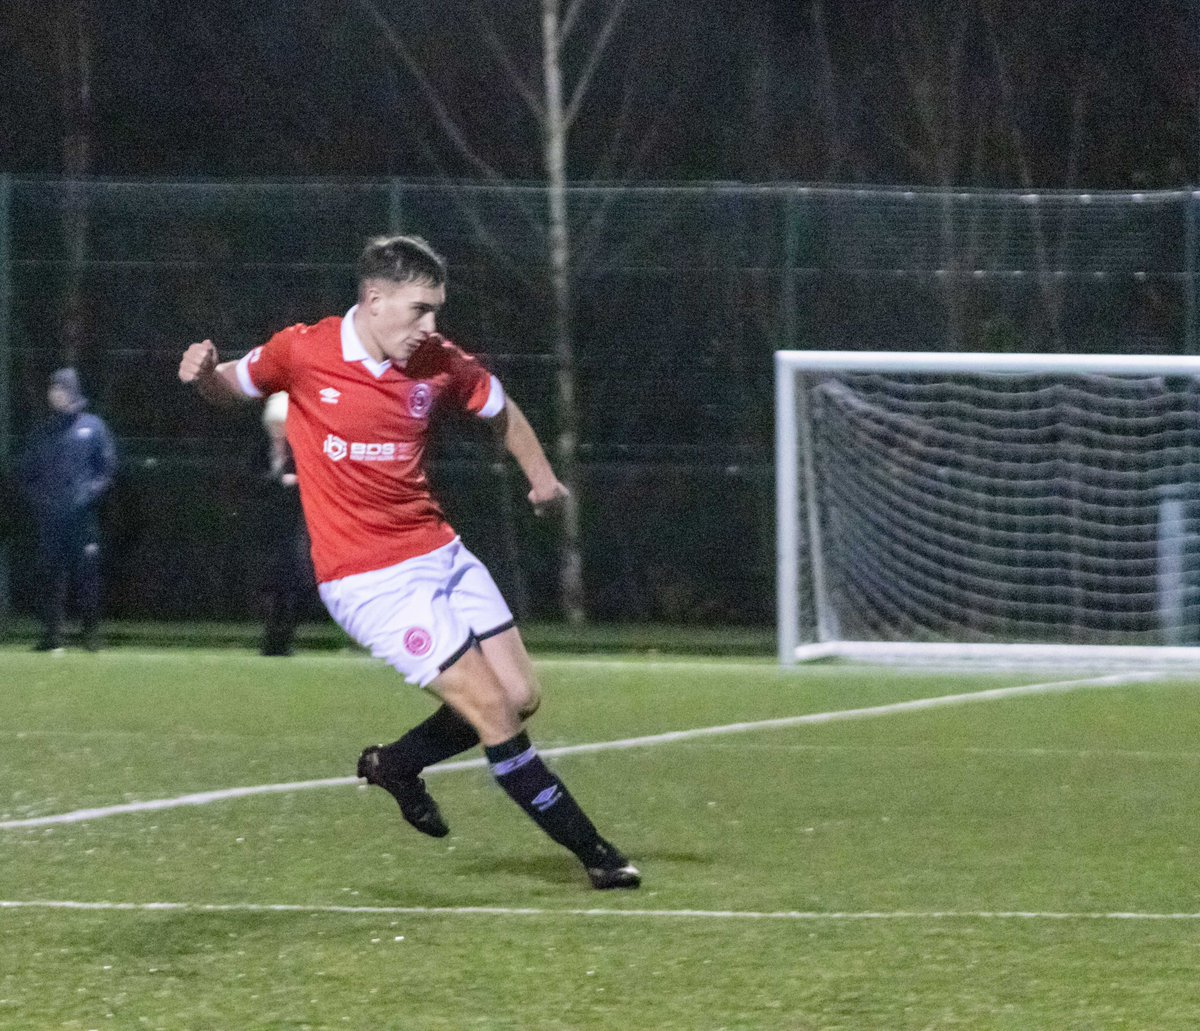 🔴 PLAYER OF THE MONTH 🔴  December's POTM has been awarded to @Cam_Watters!  We only managed to play one match in December but Cam's solid performance in our 6-3 win over Trafford United means that he is named POTM - Well Done, Cam. 👏  #UpThePaddock